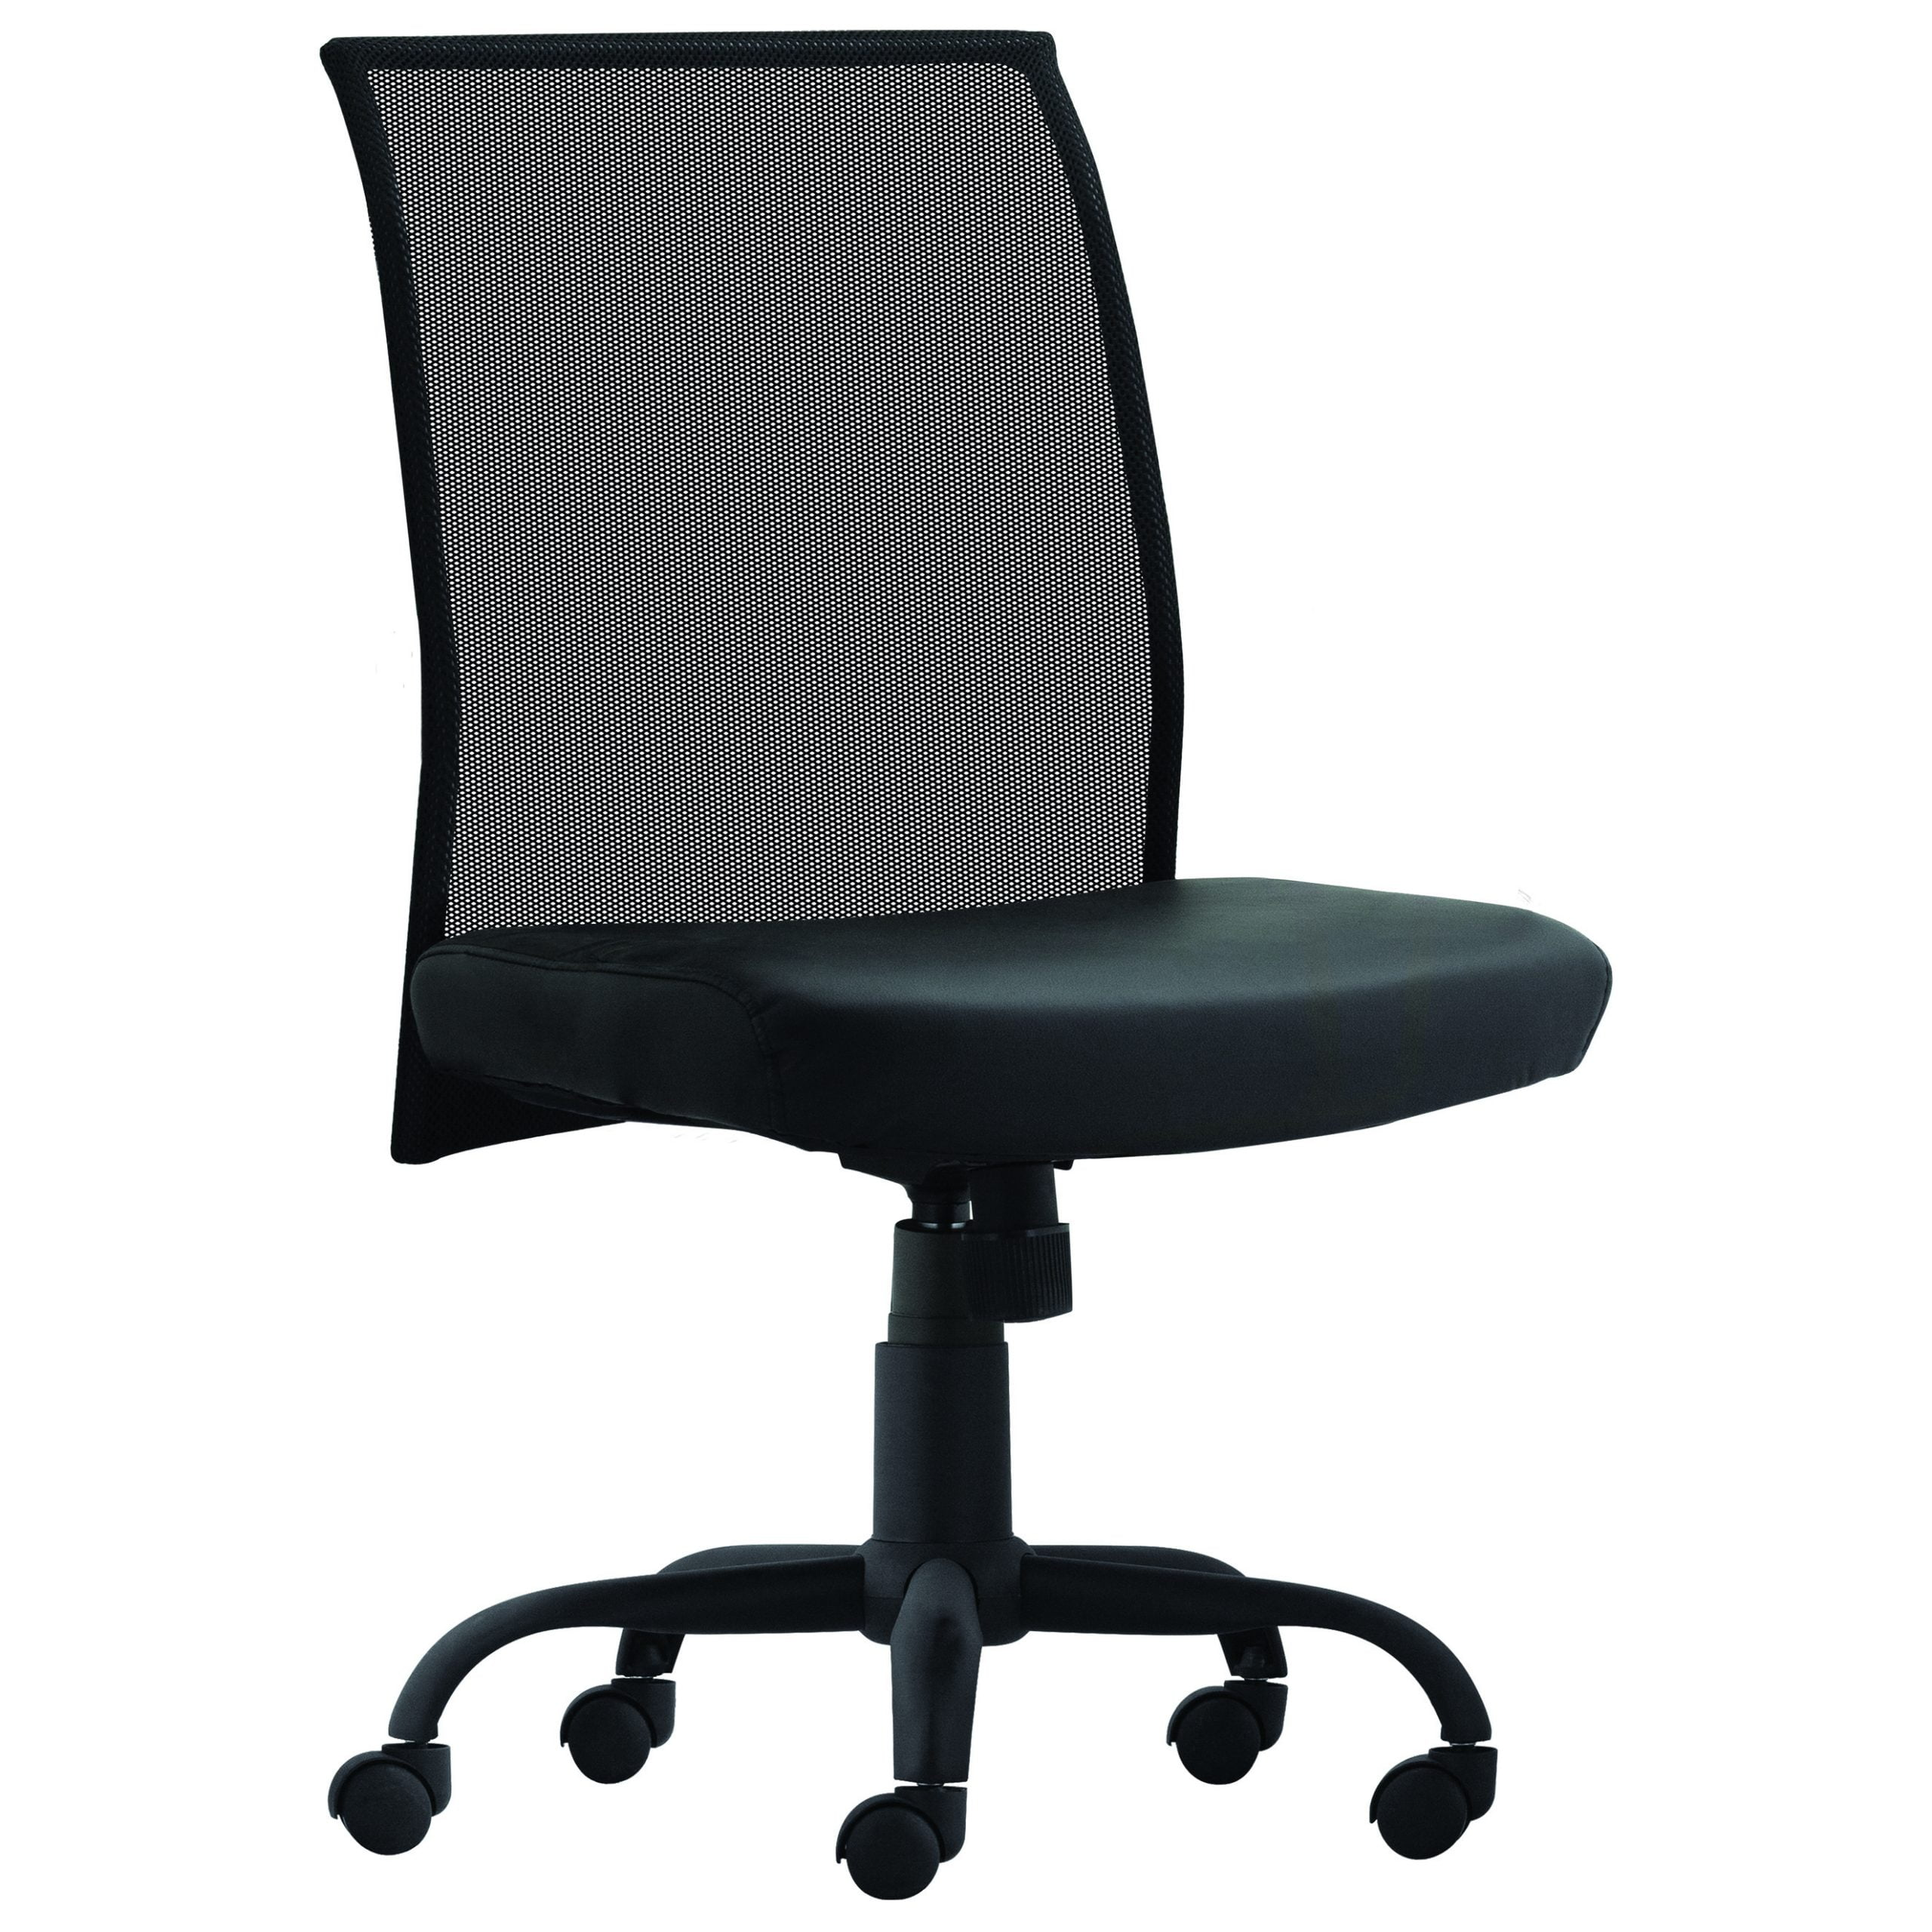 Bari Armless Task Chair - Black